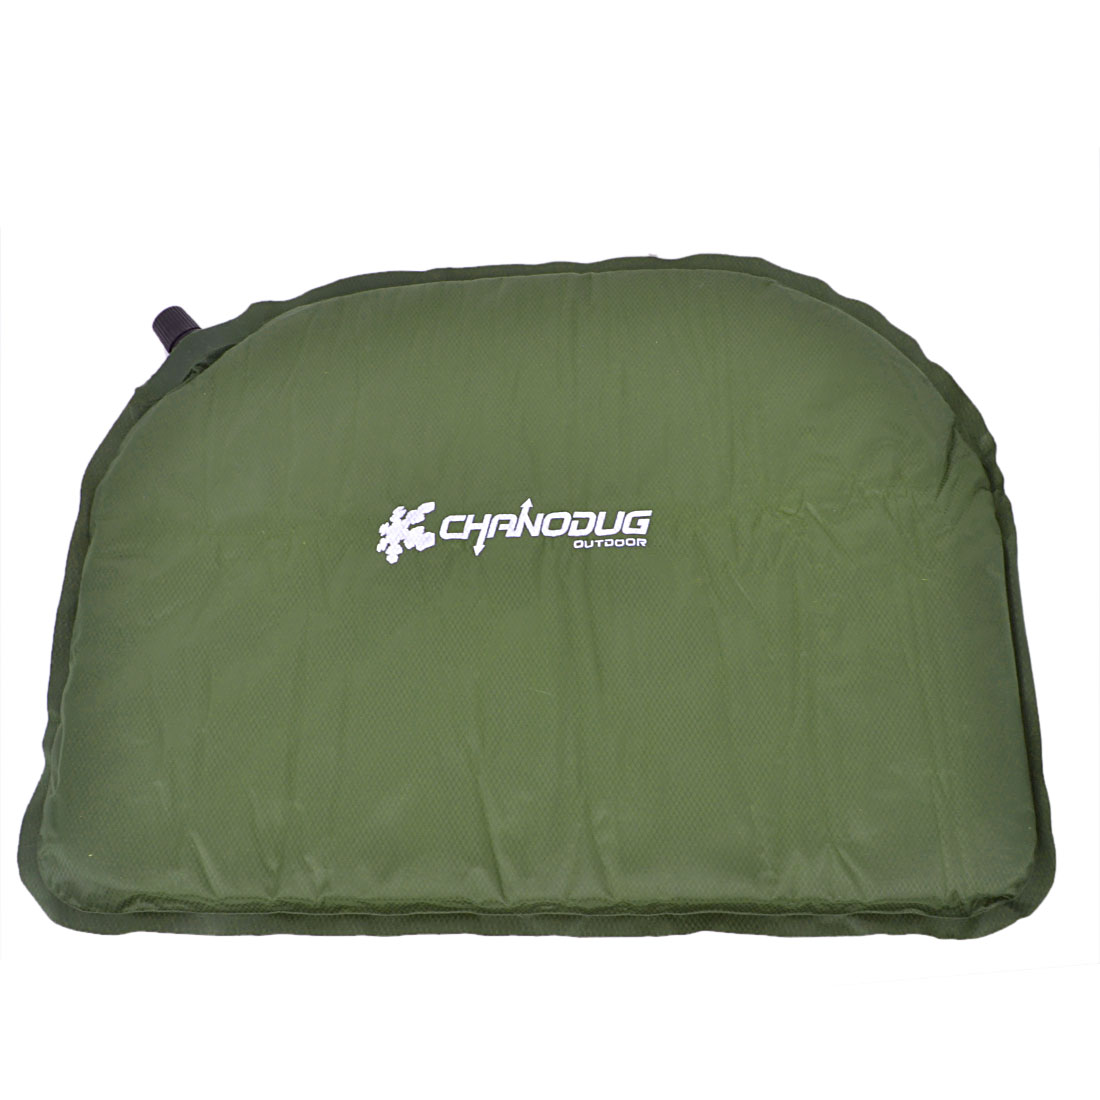 Outdoor Camping Automatic Inflatable Seat Air Cushion Army Green Gray